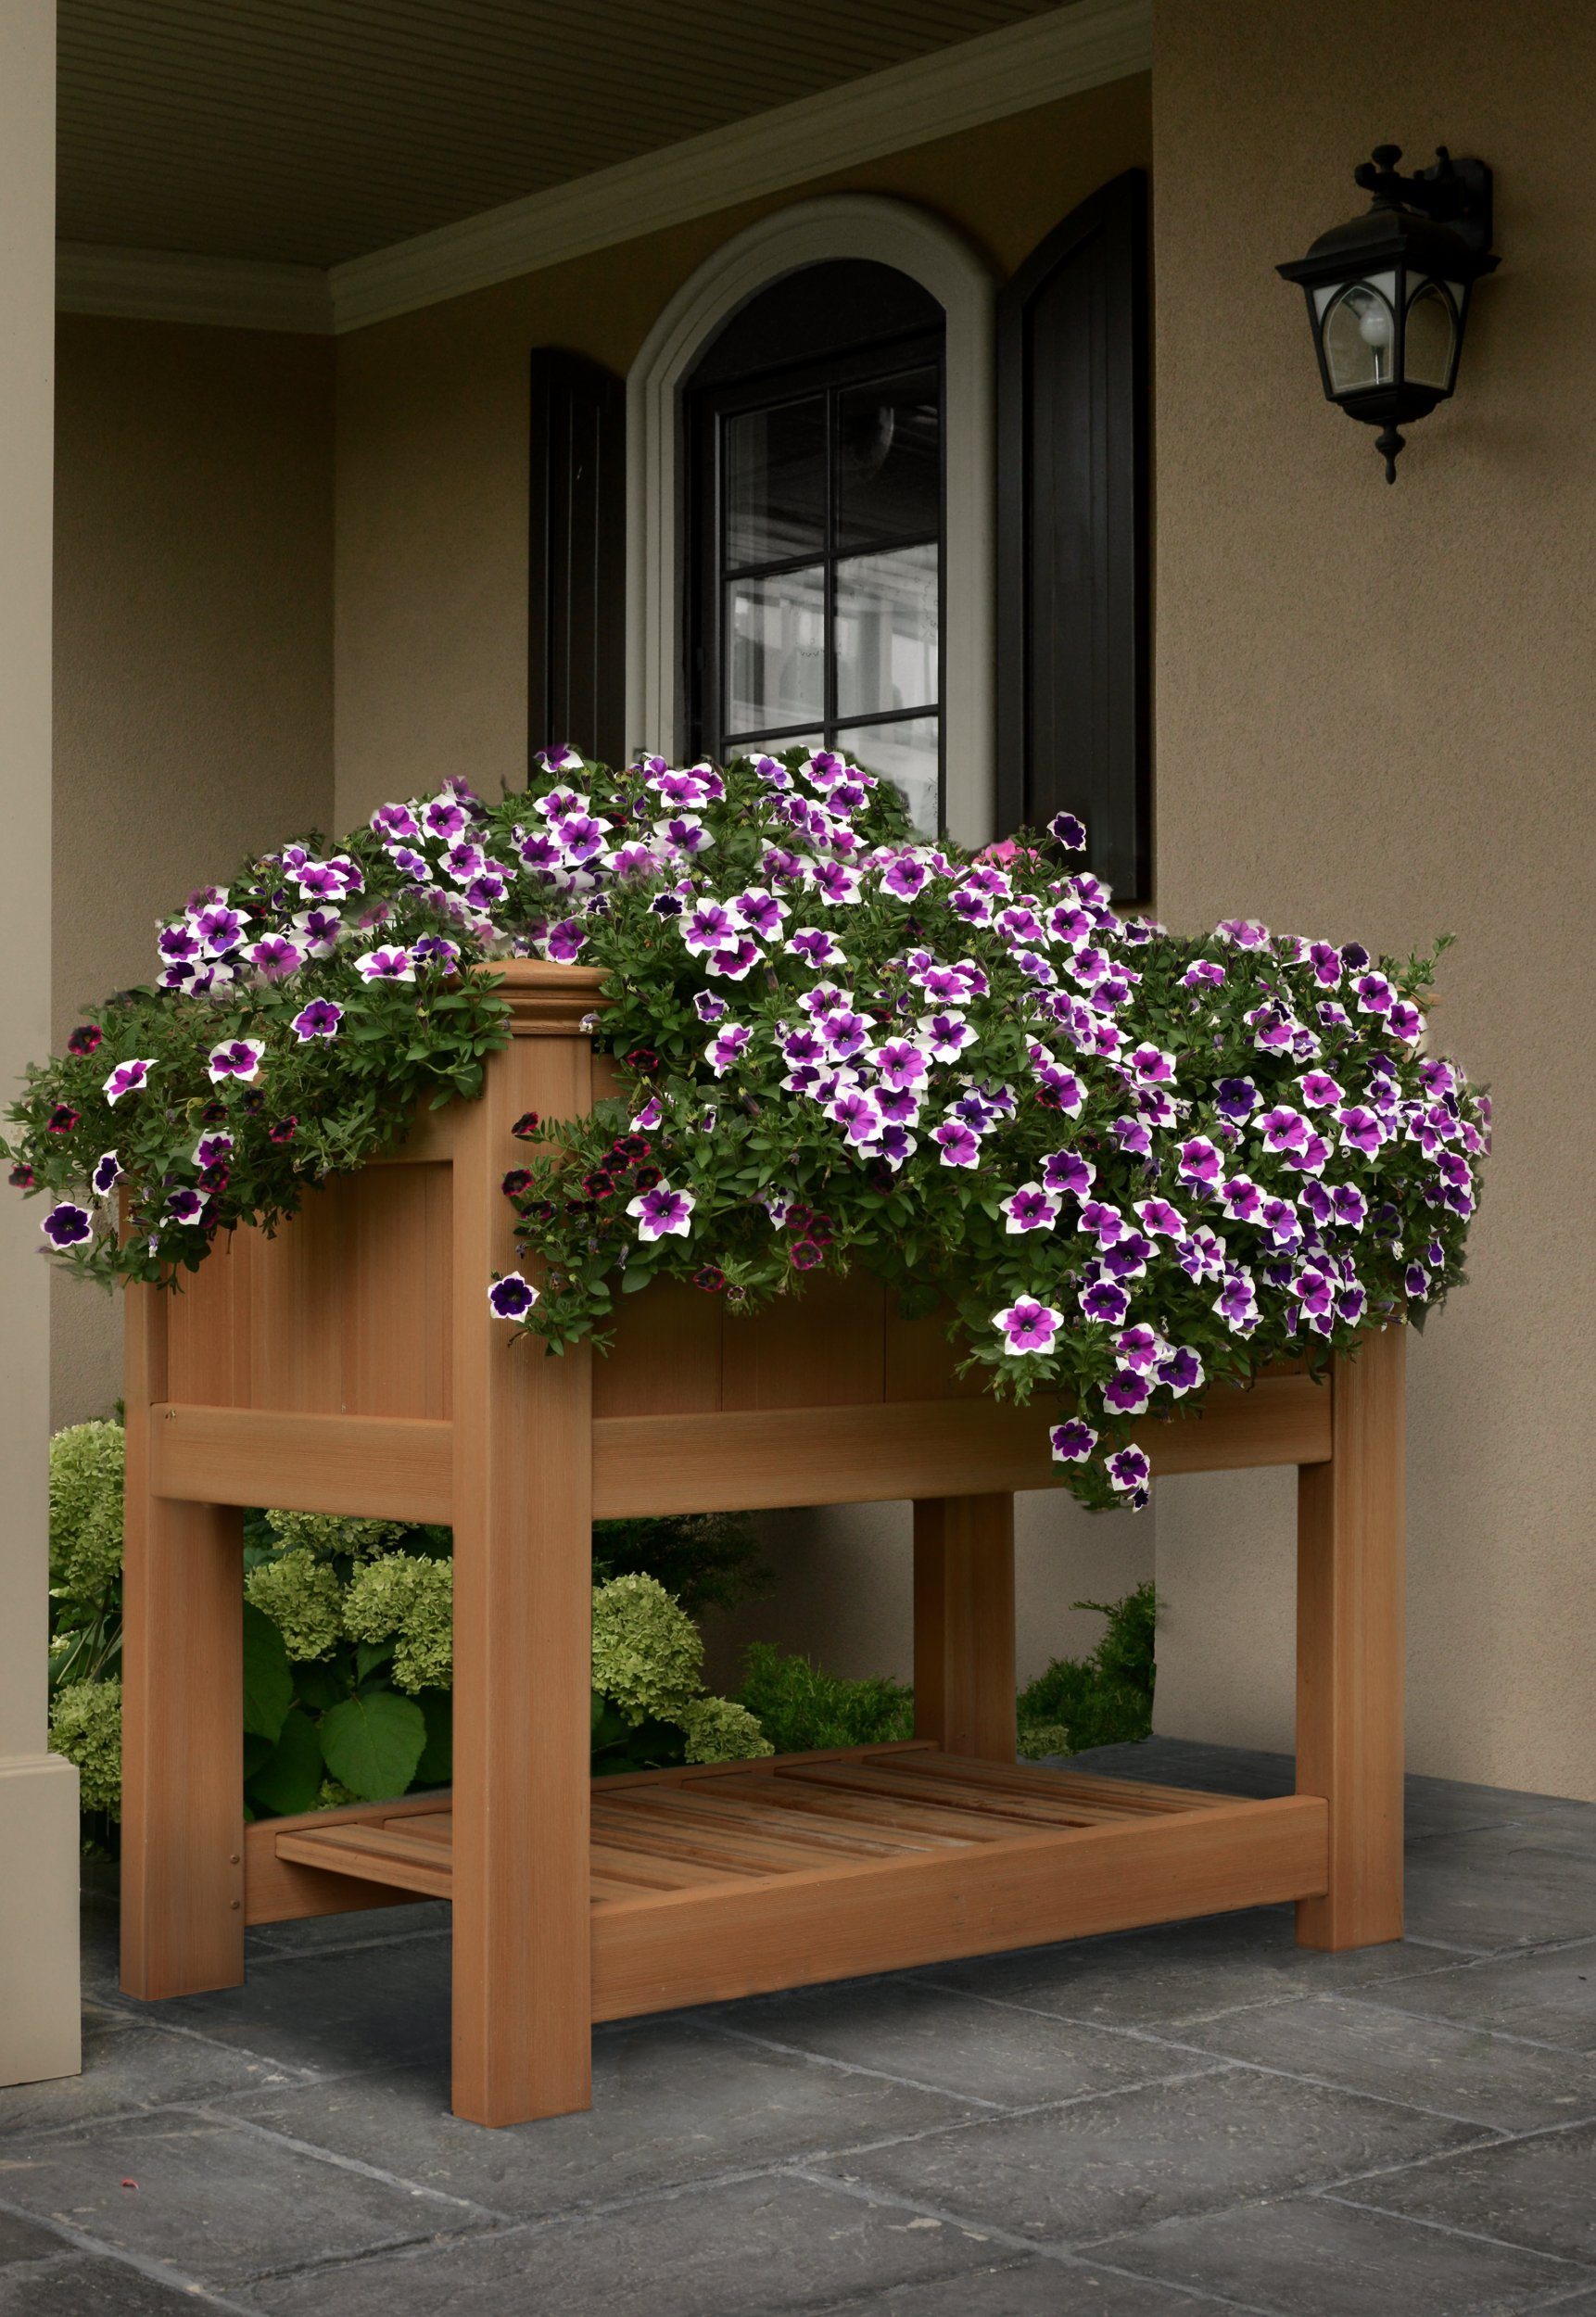 Bloomsbury 36''W x 24''L Composite Vinyl Raised Planter